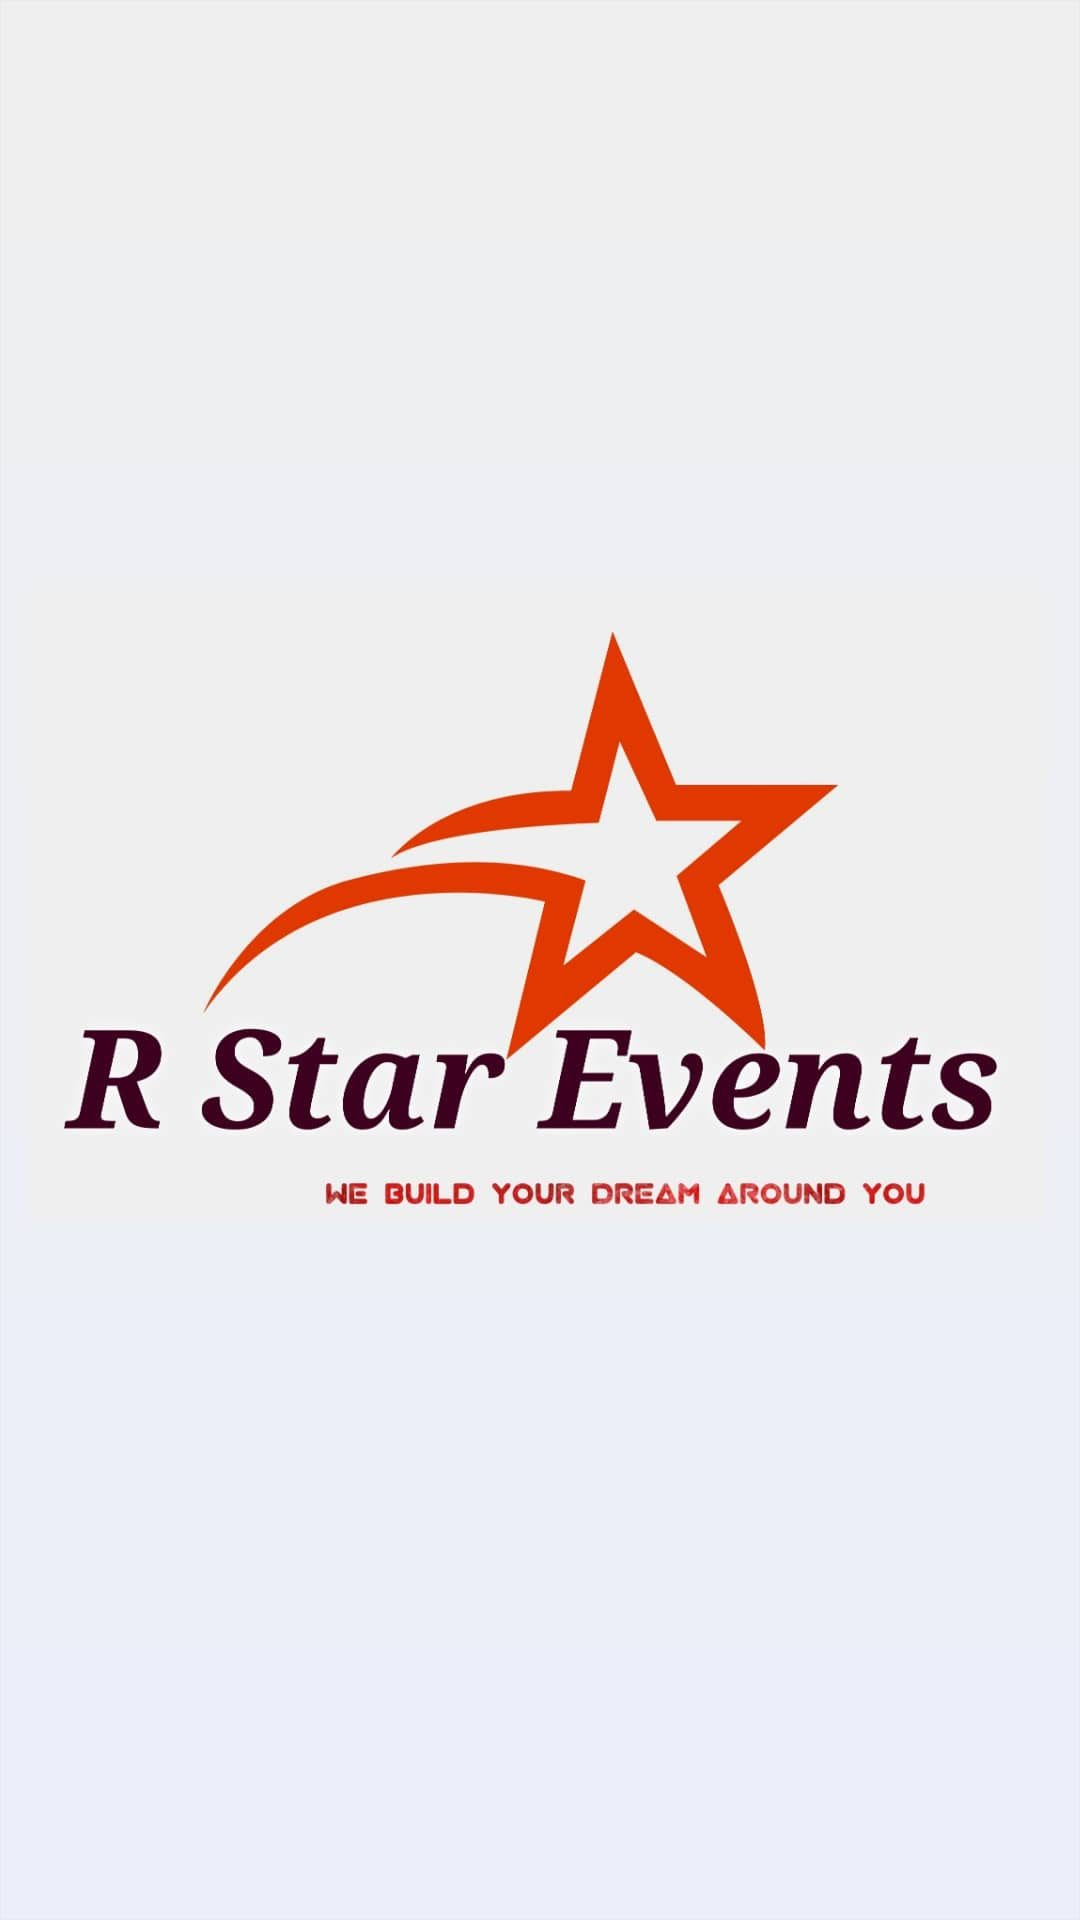 R Star Events